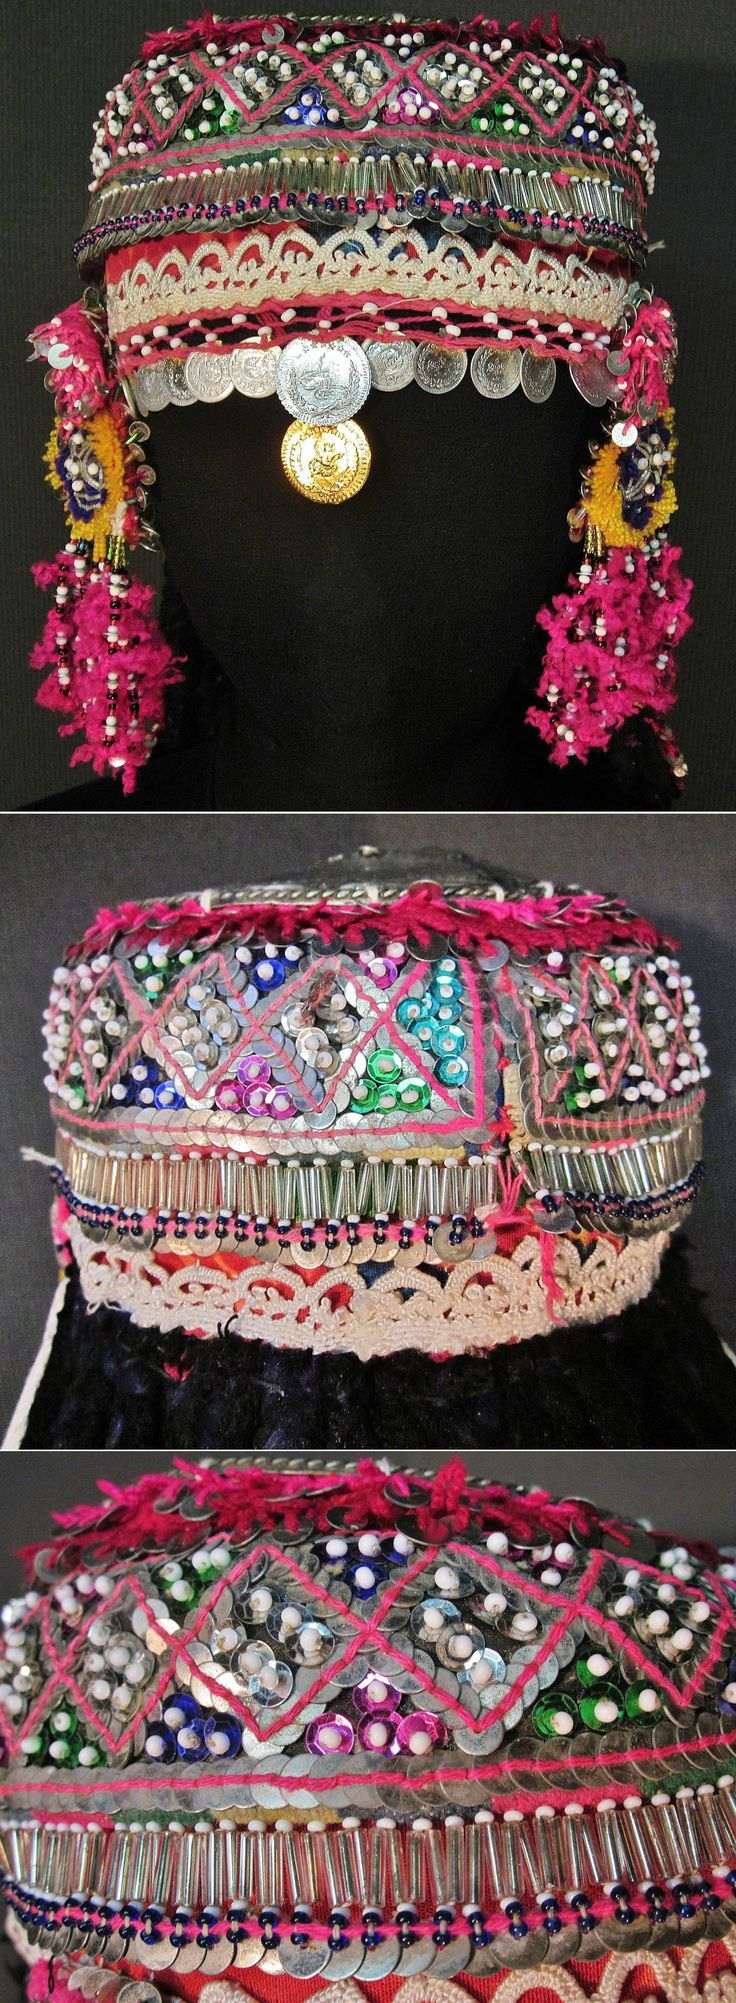 Front, rear and close-up of a traditional festive cap for 'genç kız' (= not yet betrothed girls). From the Pomak villages near Biga (Çanakkale prov.), mid-20th c.  Adorned with different types of glass beads, metal (imitation) Ottoman coins, (cotton or orlon) pom-poms and sequins (both metallic and mica).   (Inv.nr. ba$034  - Kavak Costume Collection - Antwerpen/Belgium).